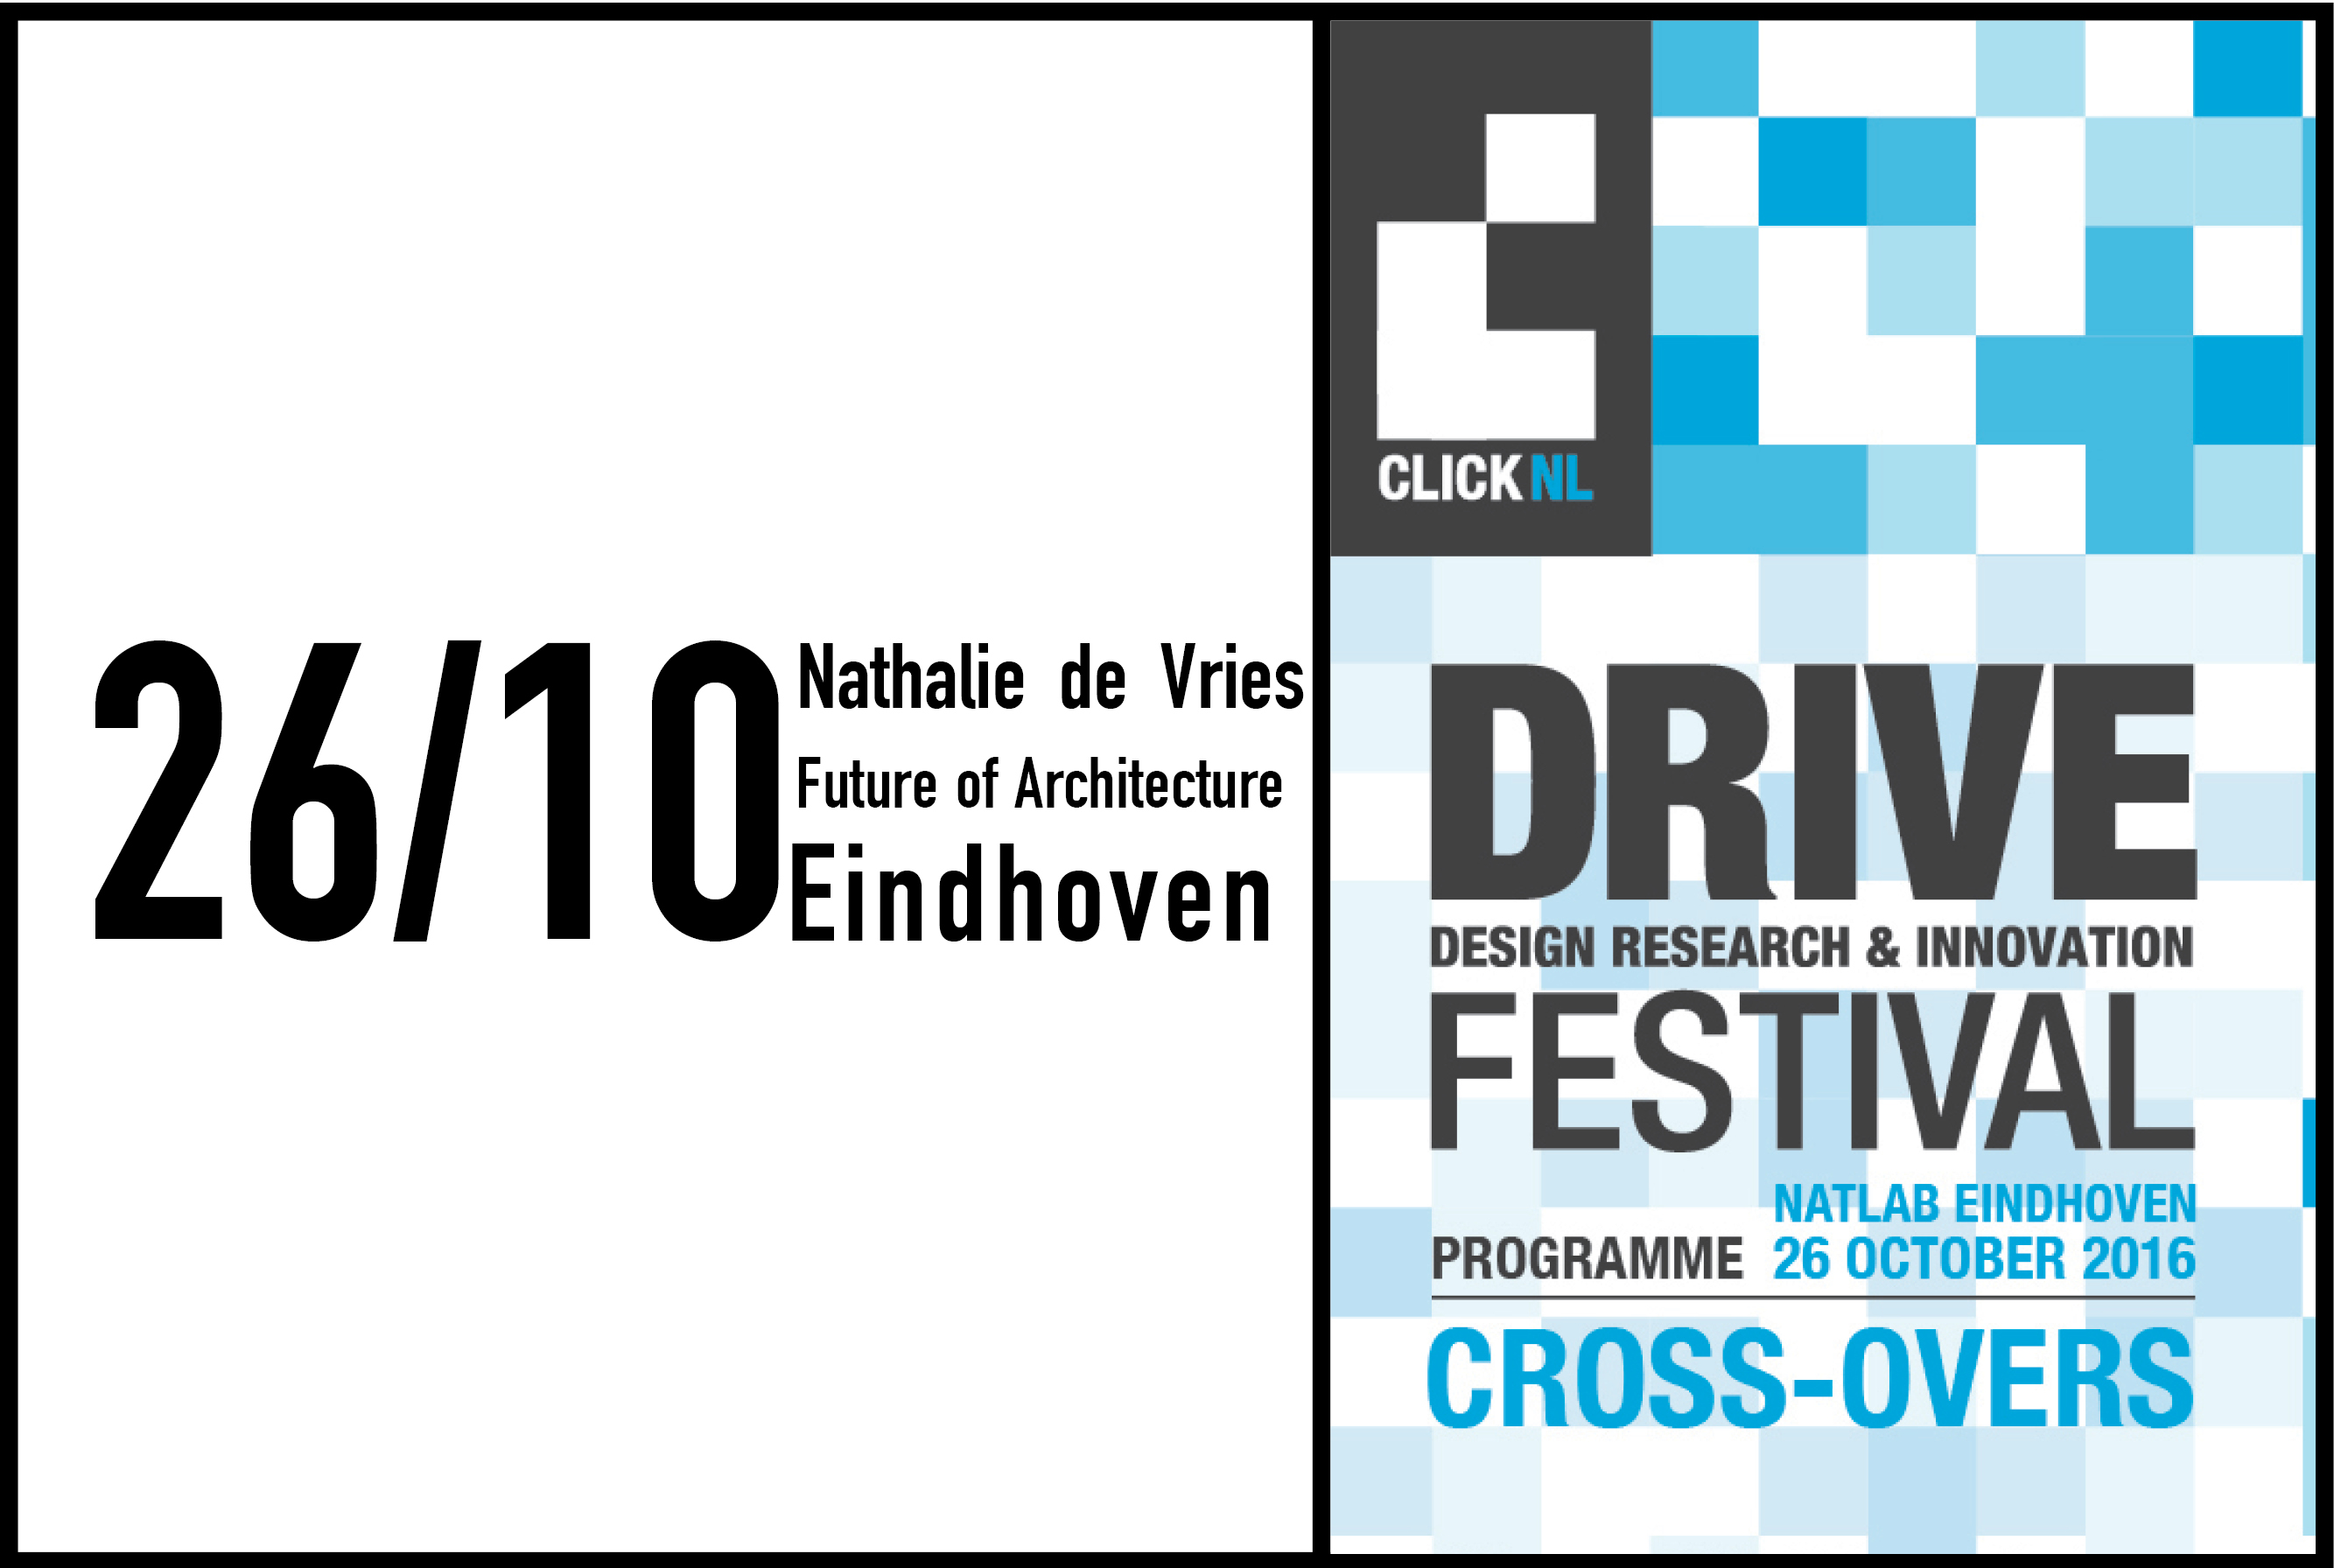 Nathalie De Vries keynote at DRIVE Festival Eindhoven, 26th October 2016